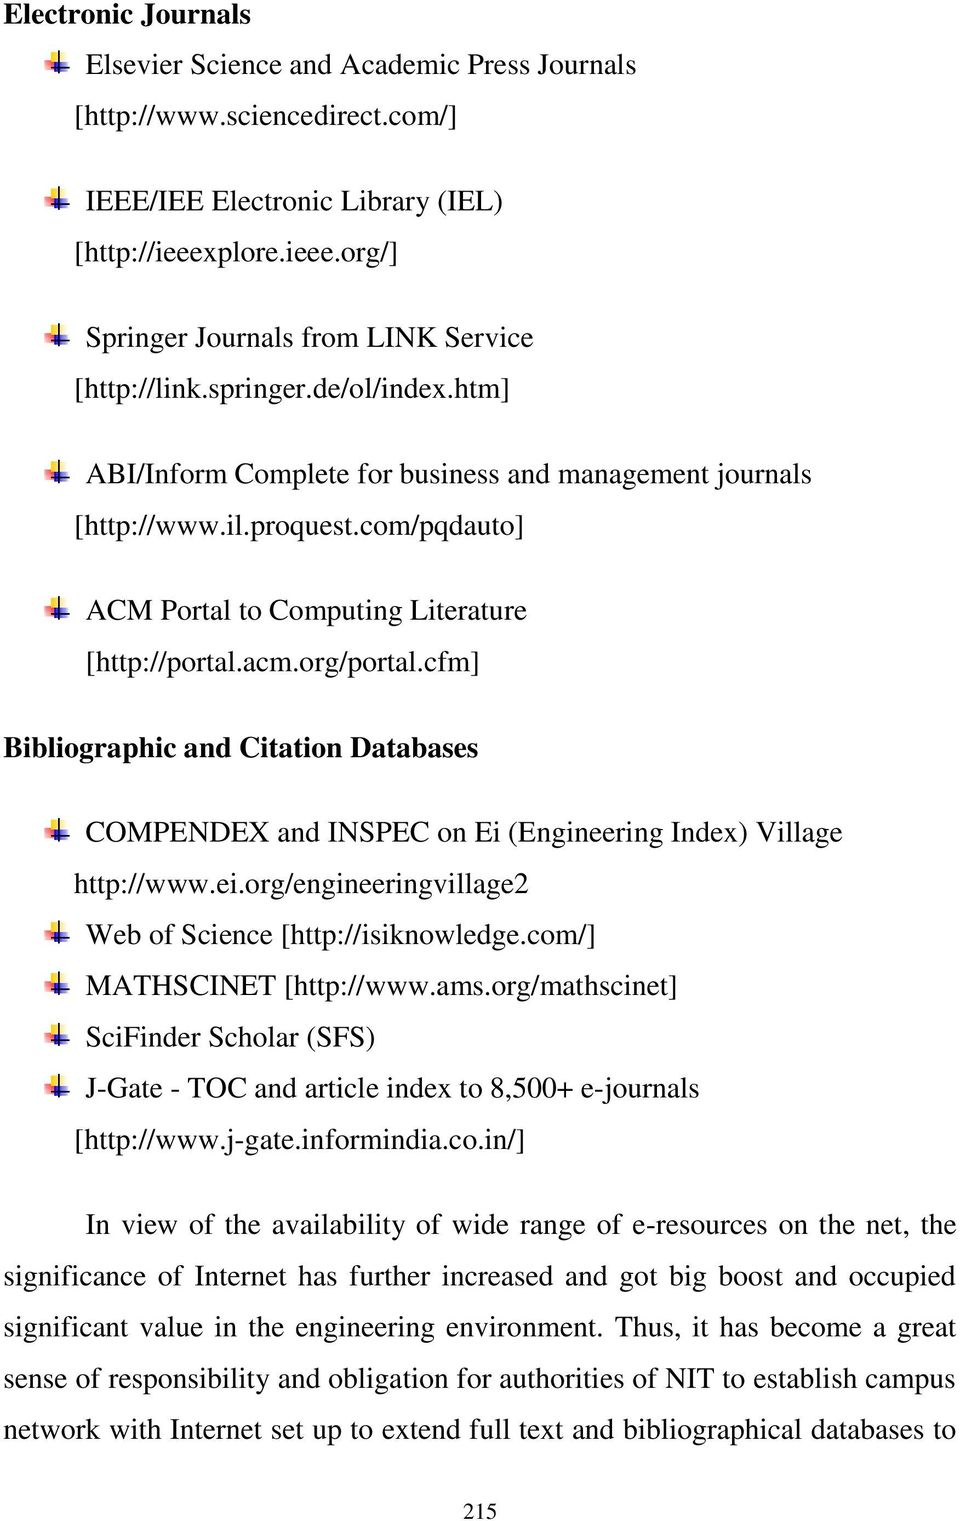 cfm] Bibliographic and Citation Databases COMPENDEX and INSPEC on Ei (Engineering Index) Village http://www.ei.org/engineeringvillage2 Web of Science [http://isiknowledge.com/] MATHSCINET [http://www.